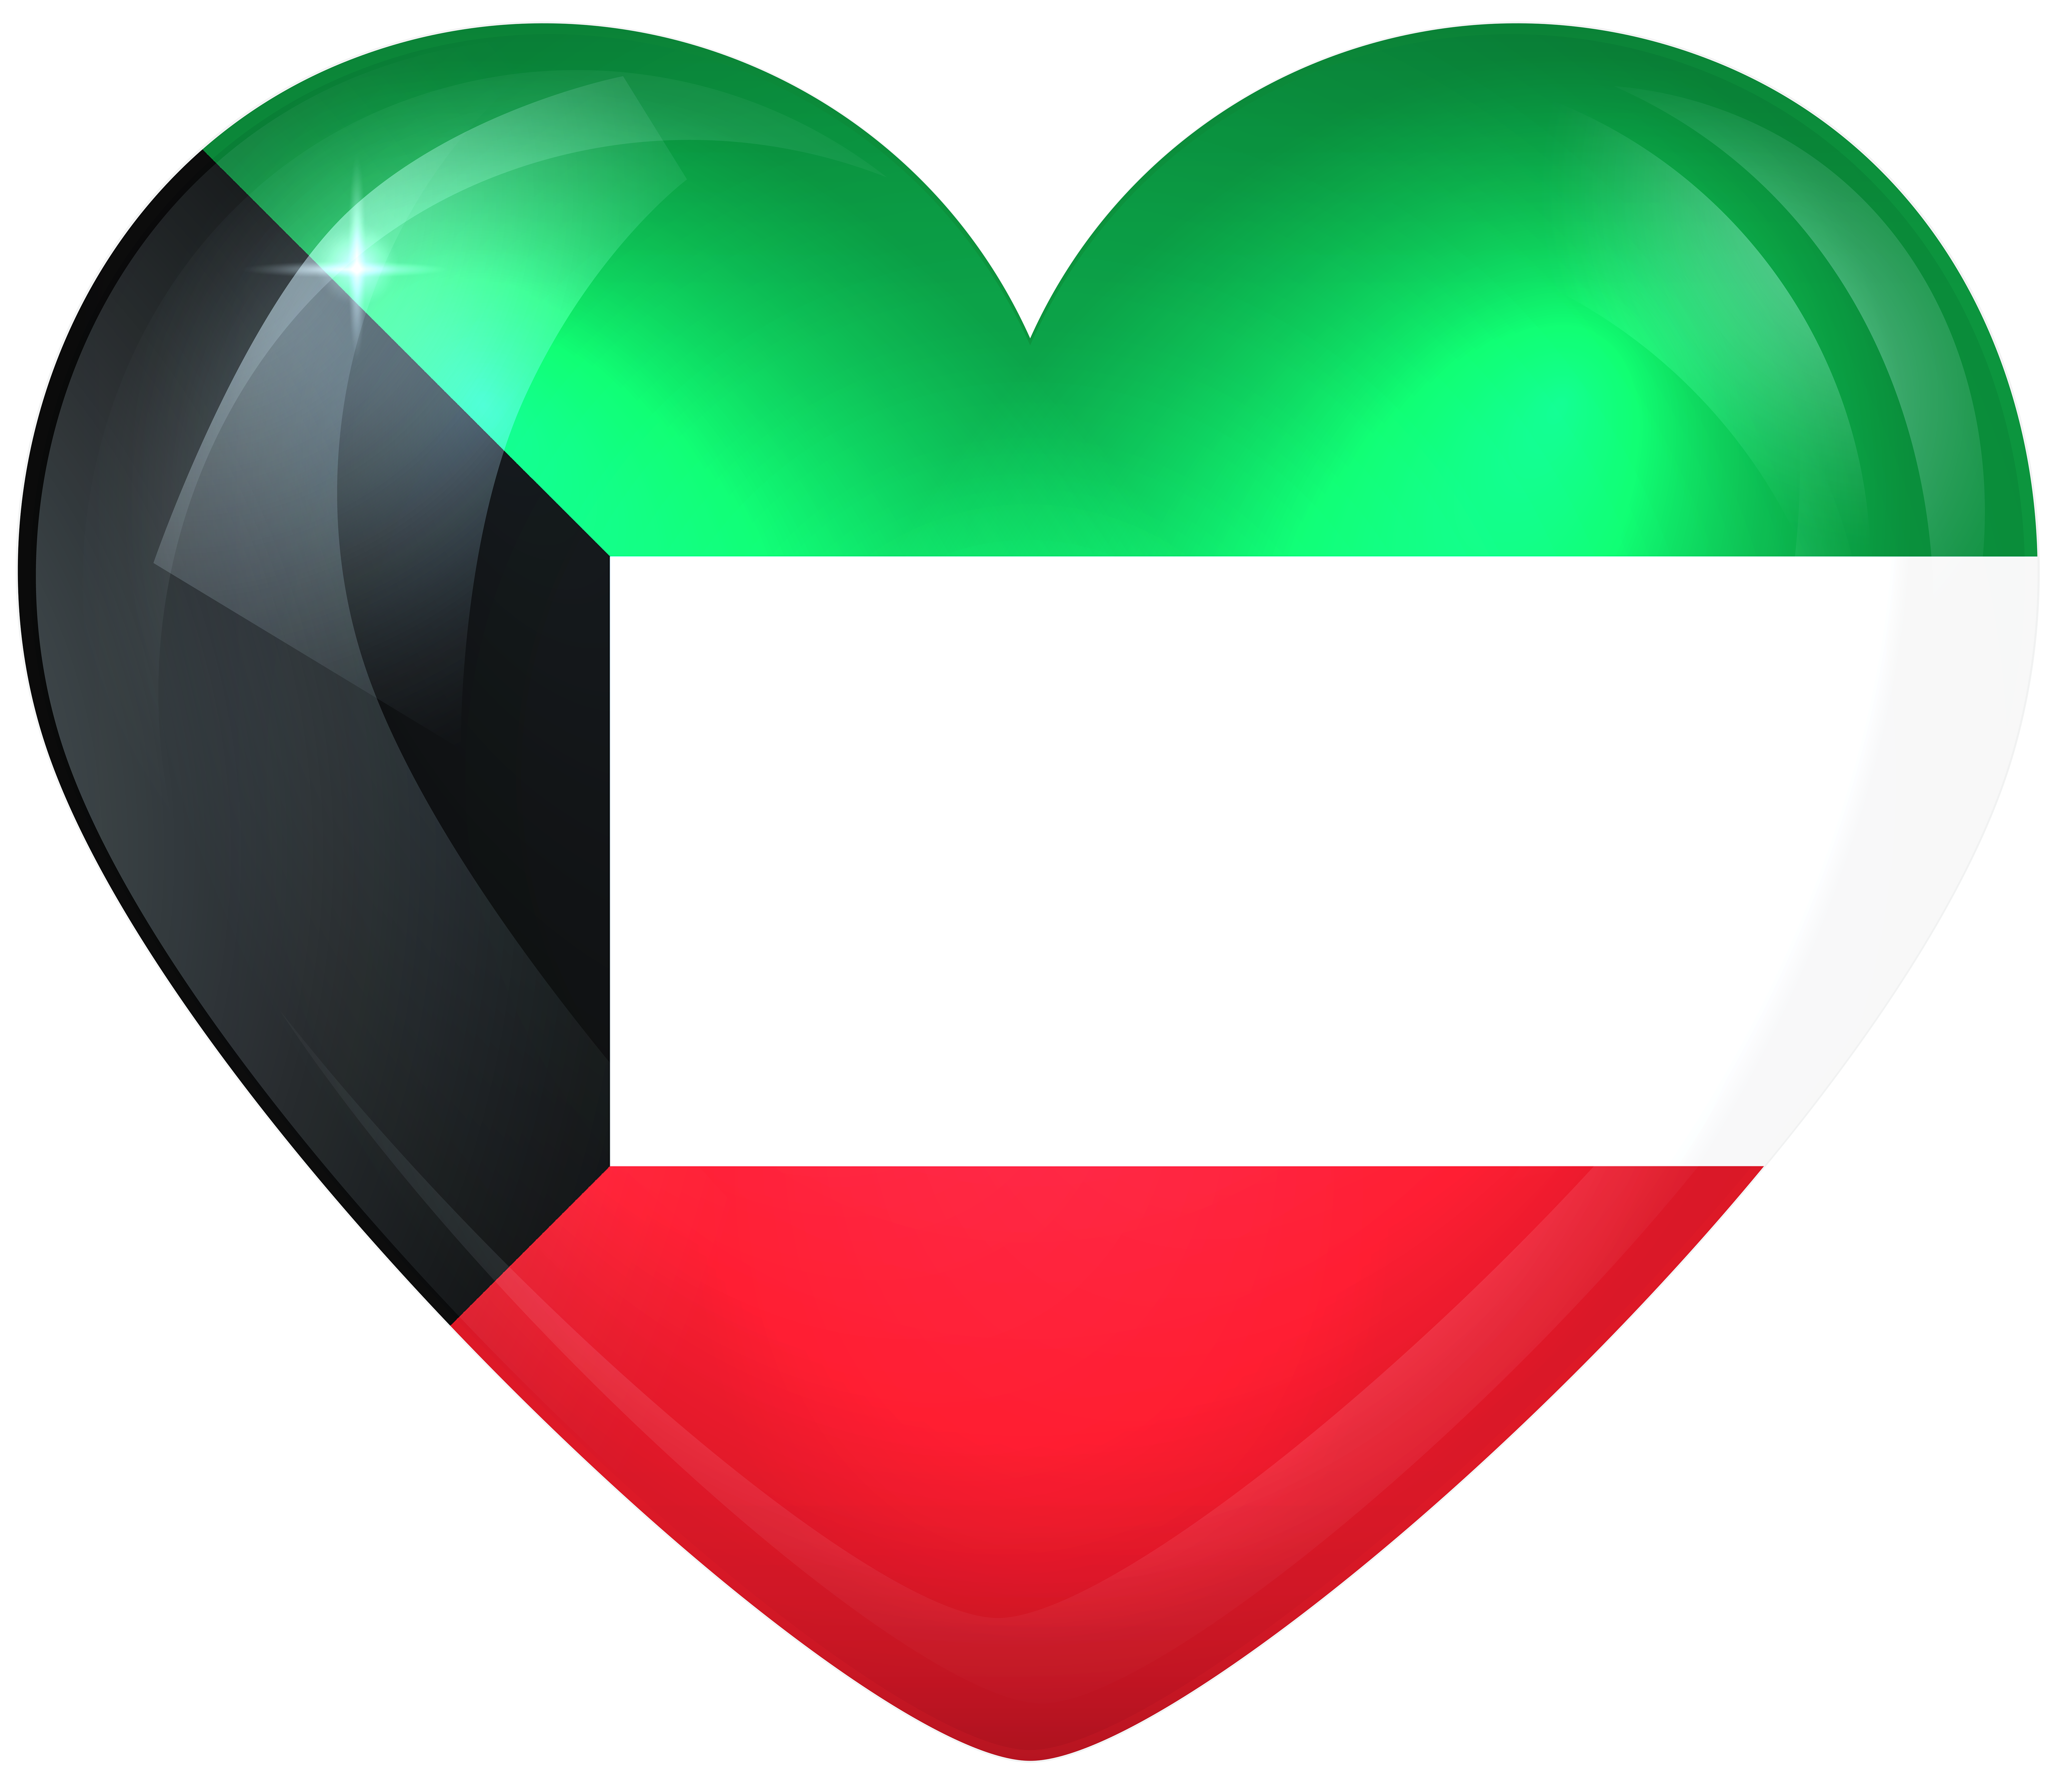 Images of borders flags. Mint heart png svg transparent library